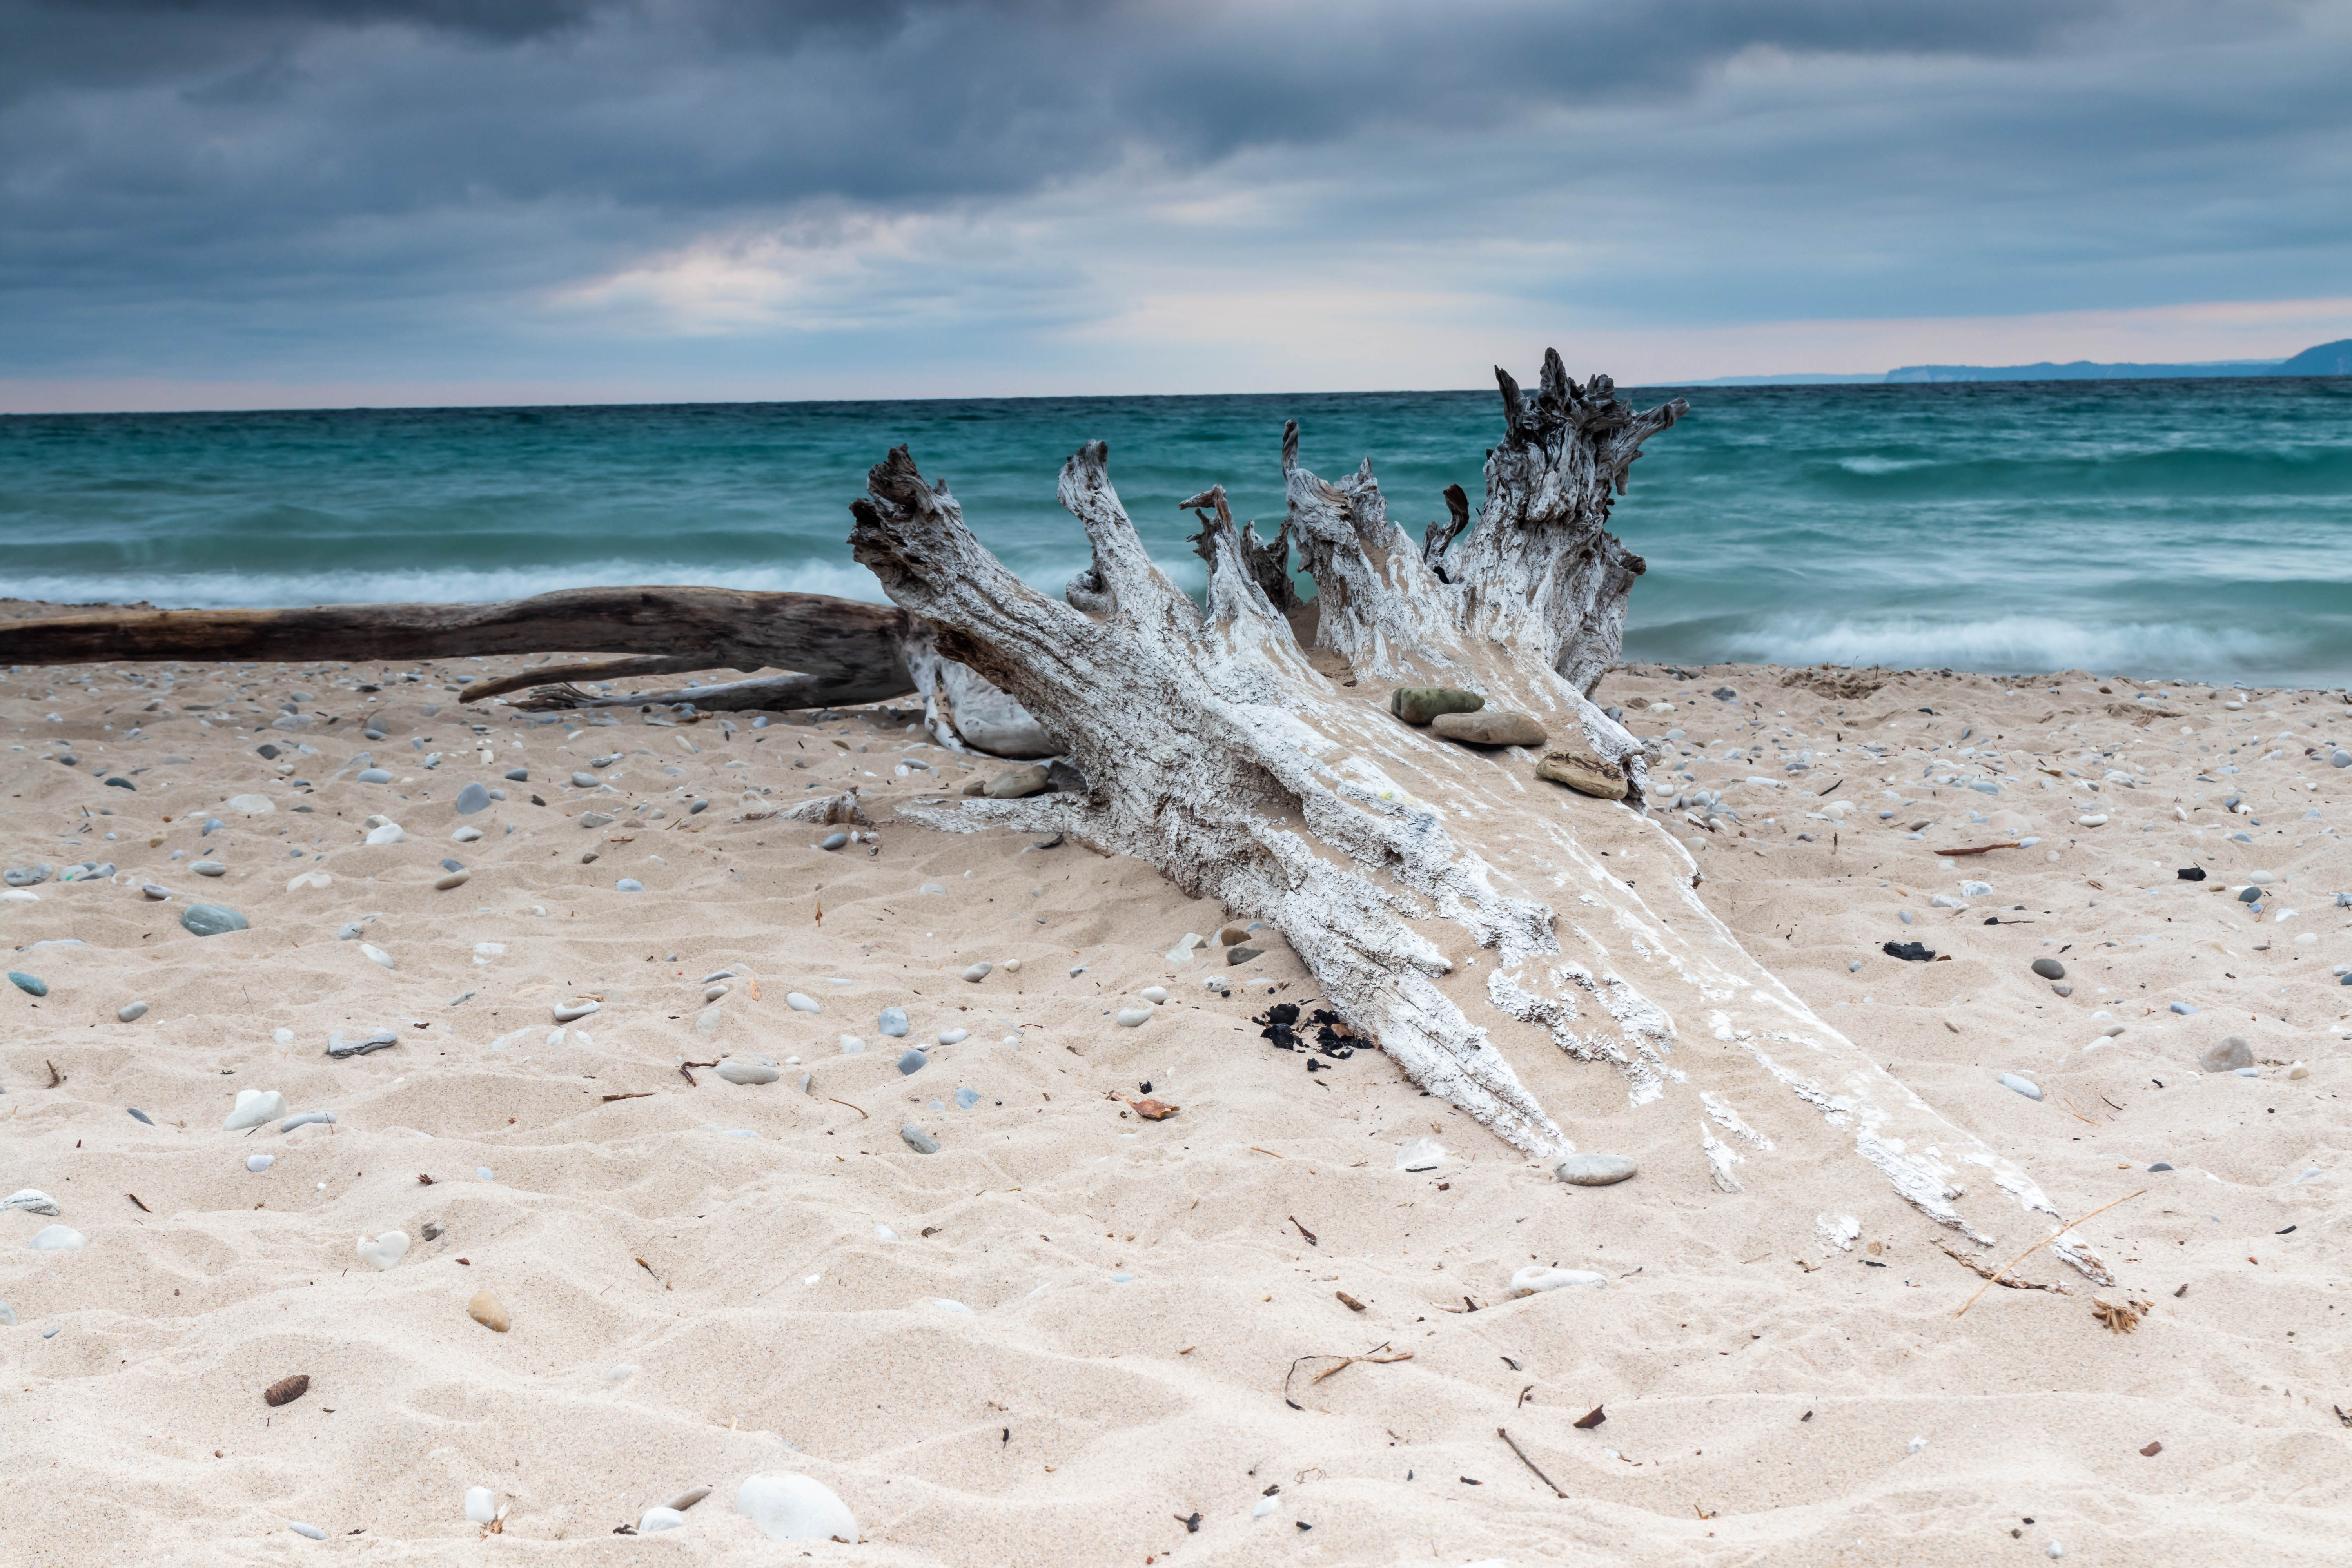 Driftwood on the beach at Good Harbor Bay